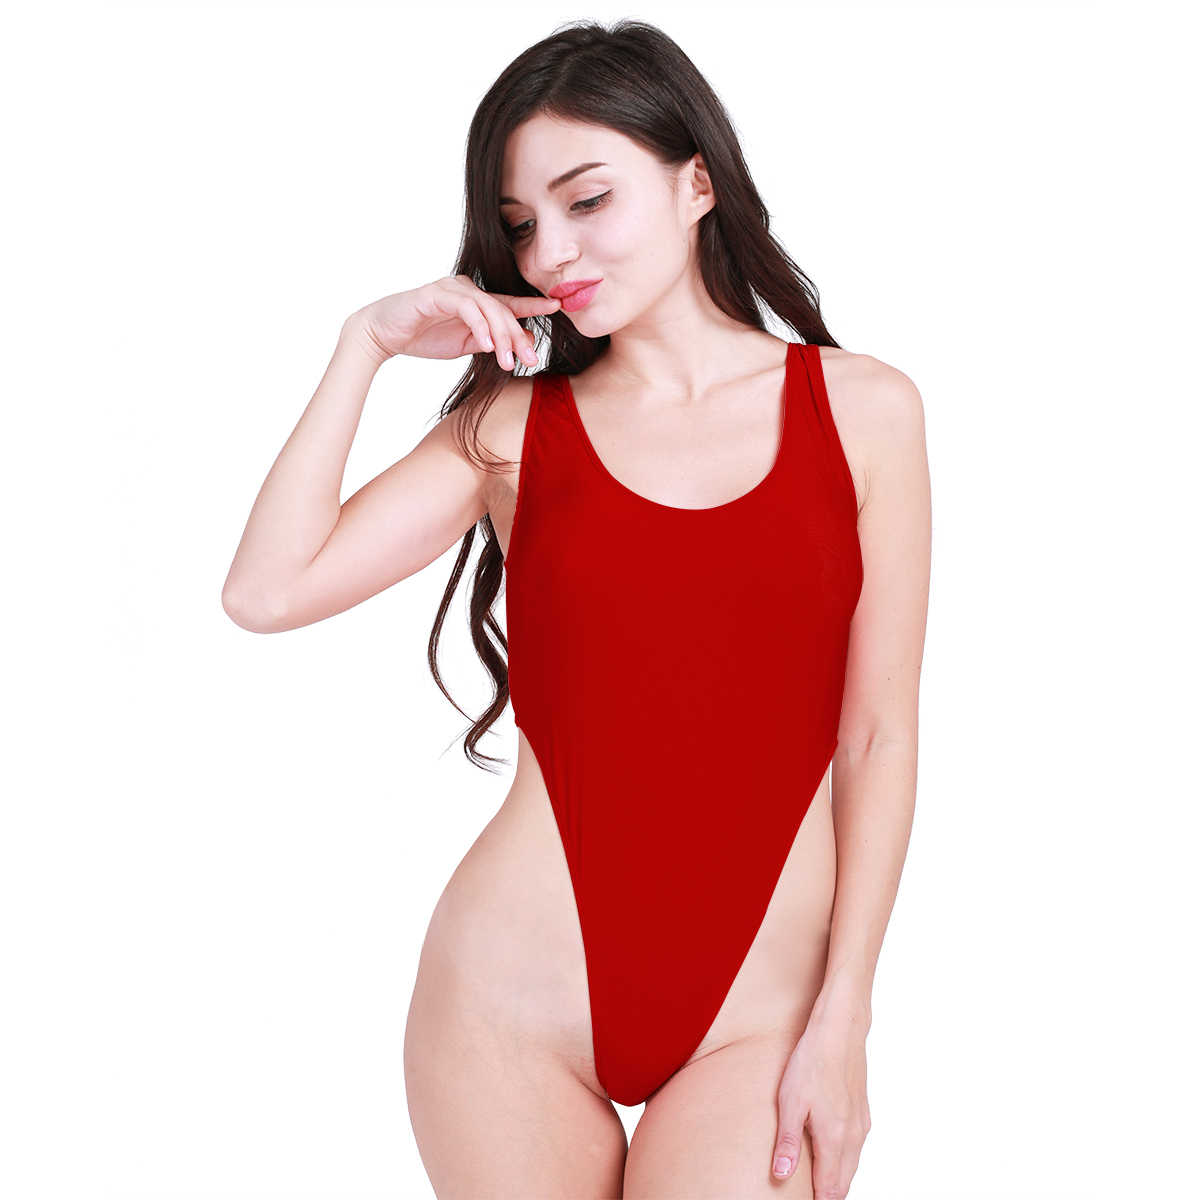 ca5d4e845 Detail Feedback Questions about Female Stretchy Bodysuit Sleeveless ...